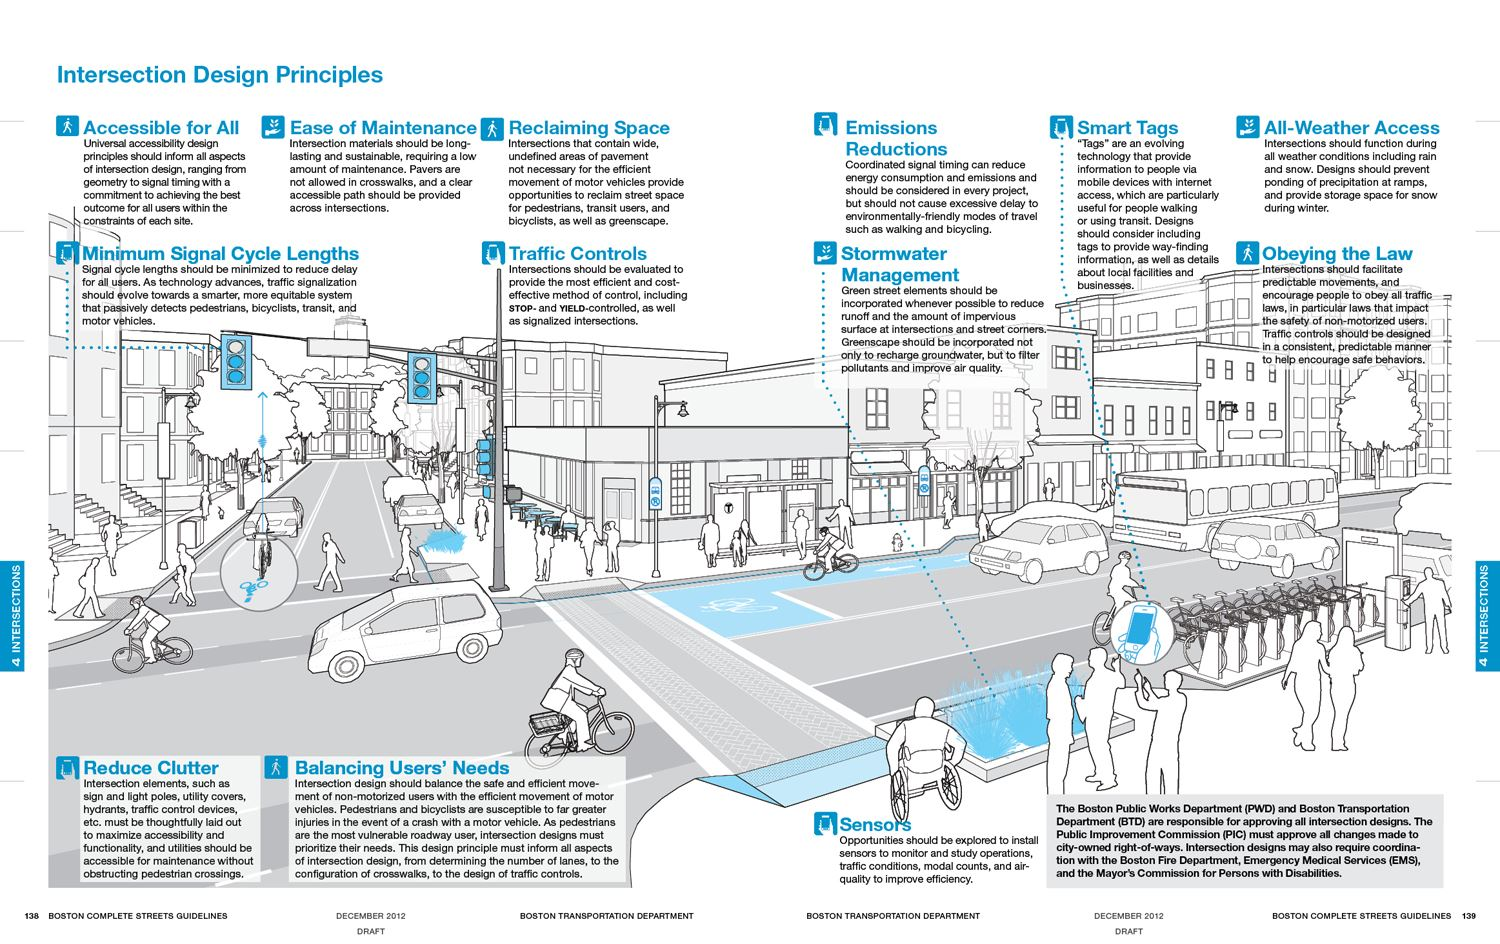 Elements of Complete Streets